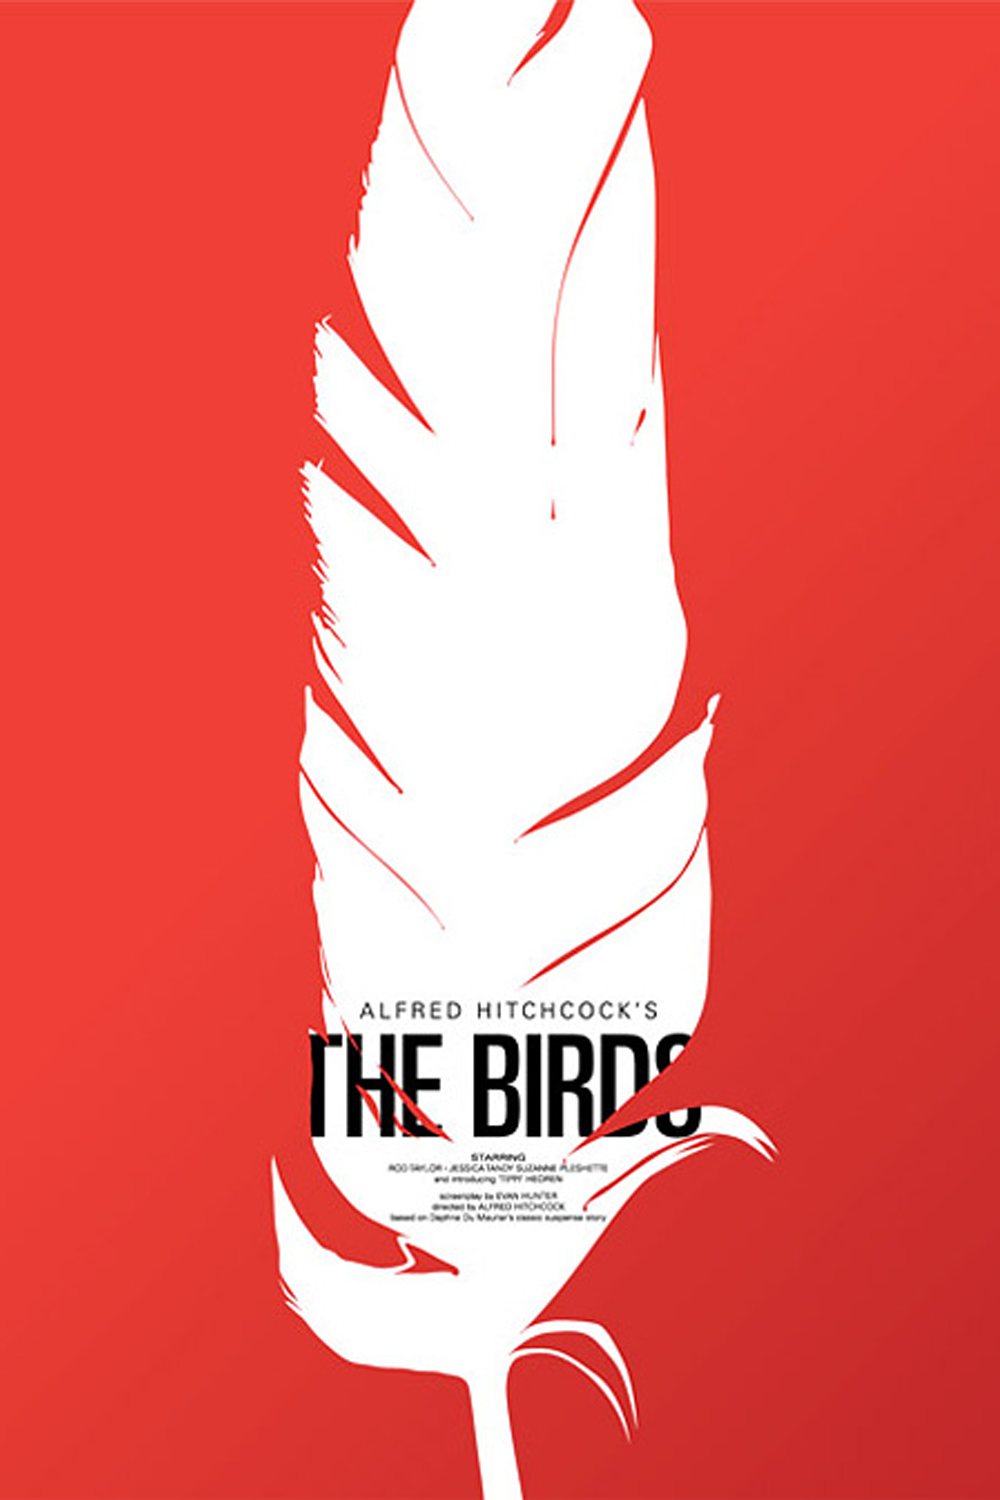 Saul Bass The Birds Movie Poster Ok So This Is Saul Bass Need I Say More I Decided To Stick With The Birds Theme Thi Filmposter Filmposters Zeefdruk